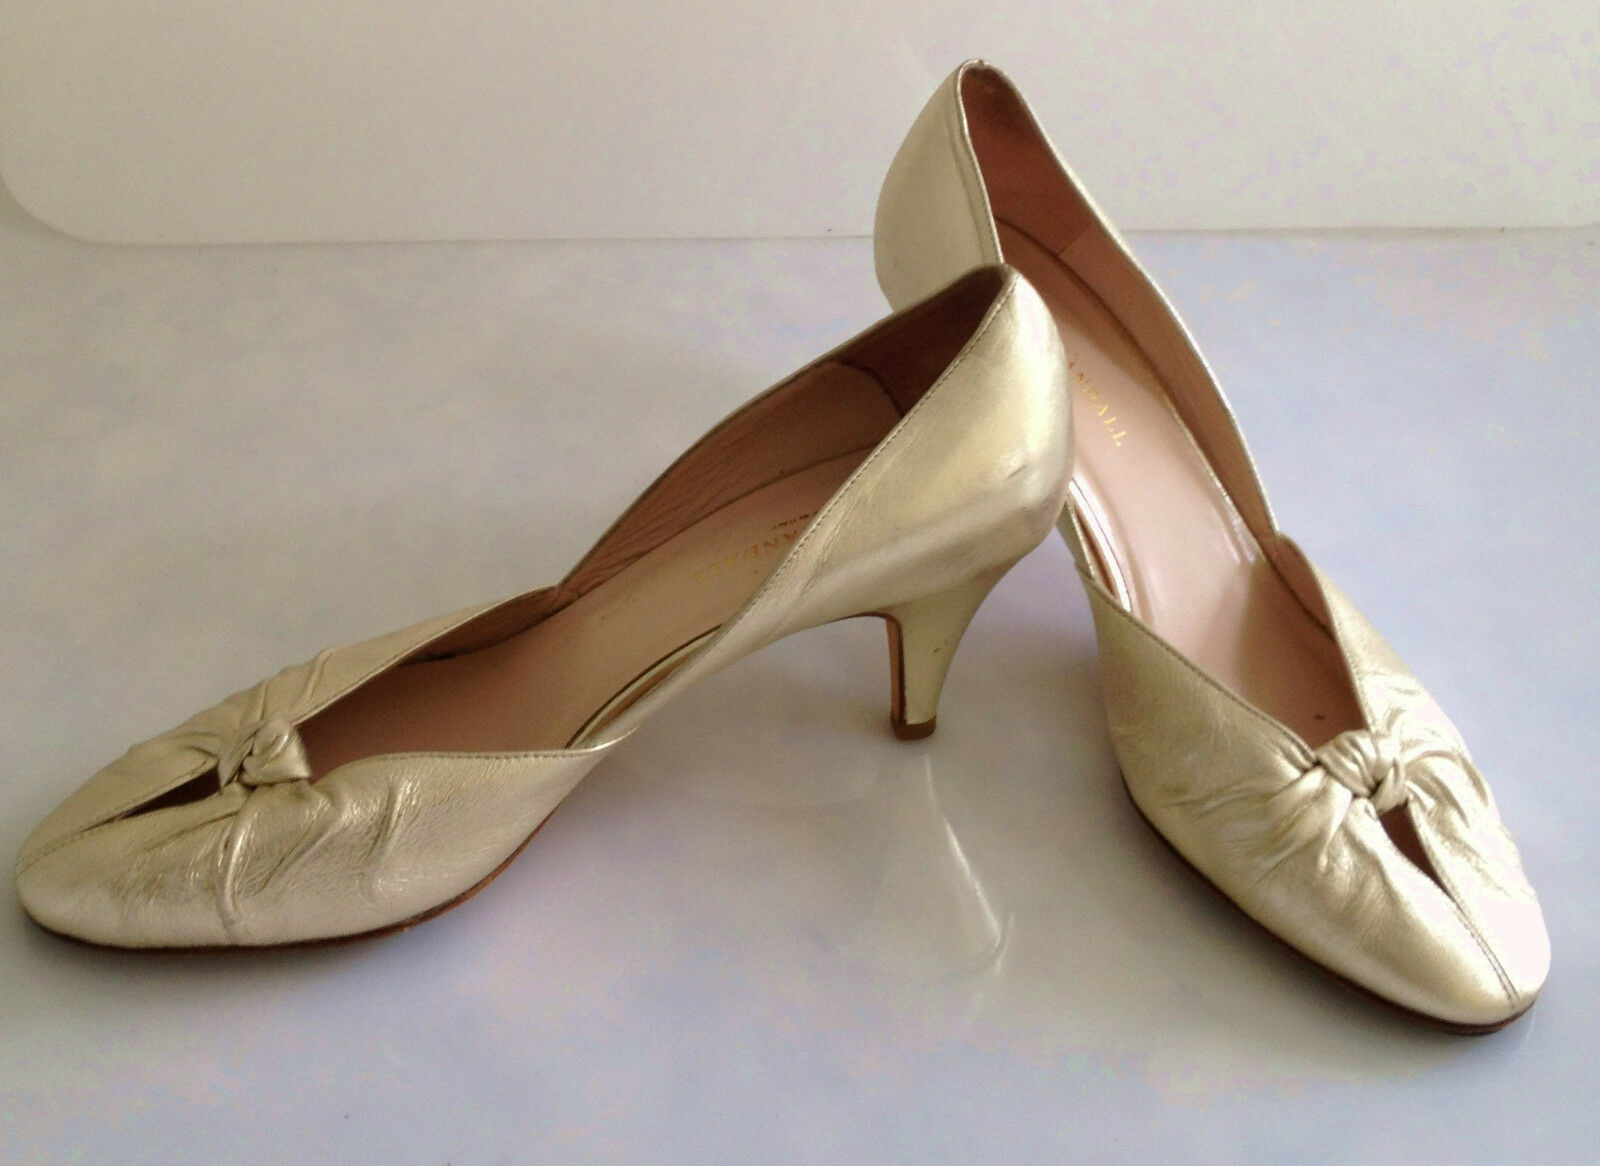 Loeffler Randall - Womens HEELS Metallic gold PUMPS - Size10.5 B